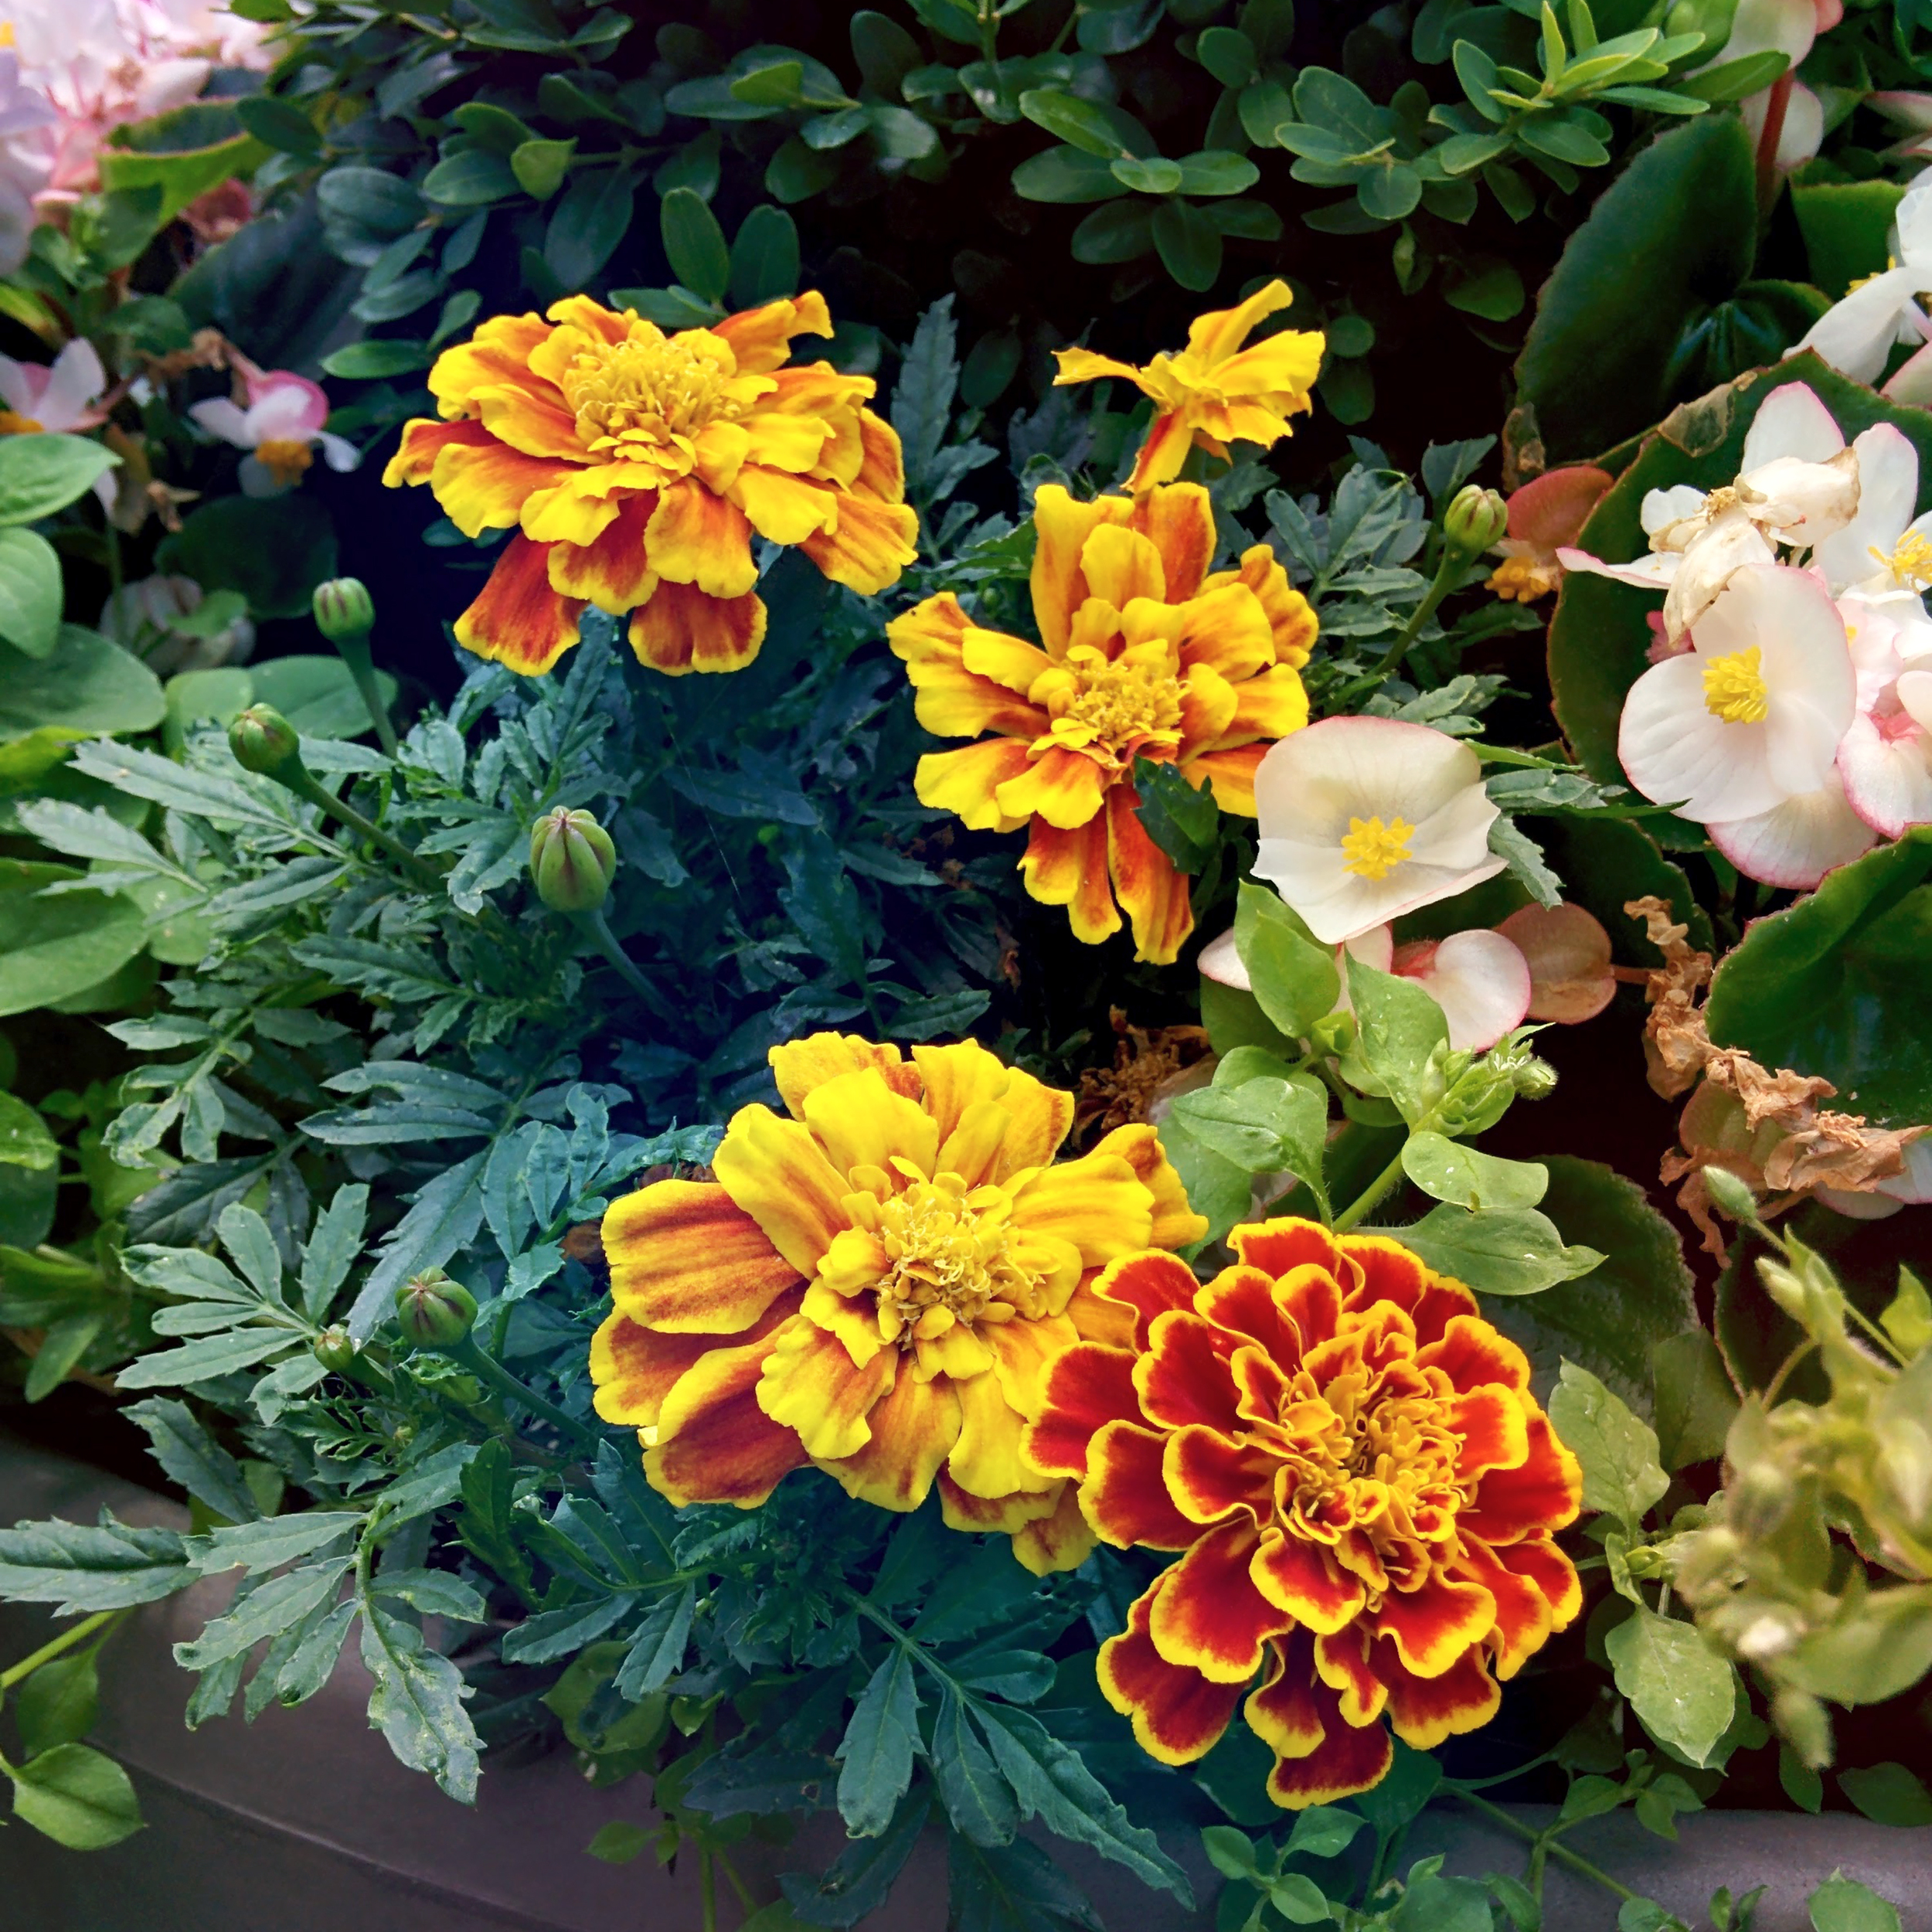 Marigolds and Begonias